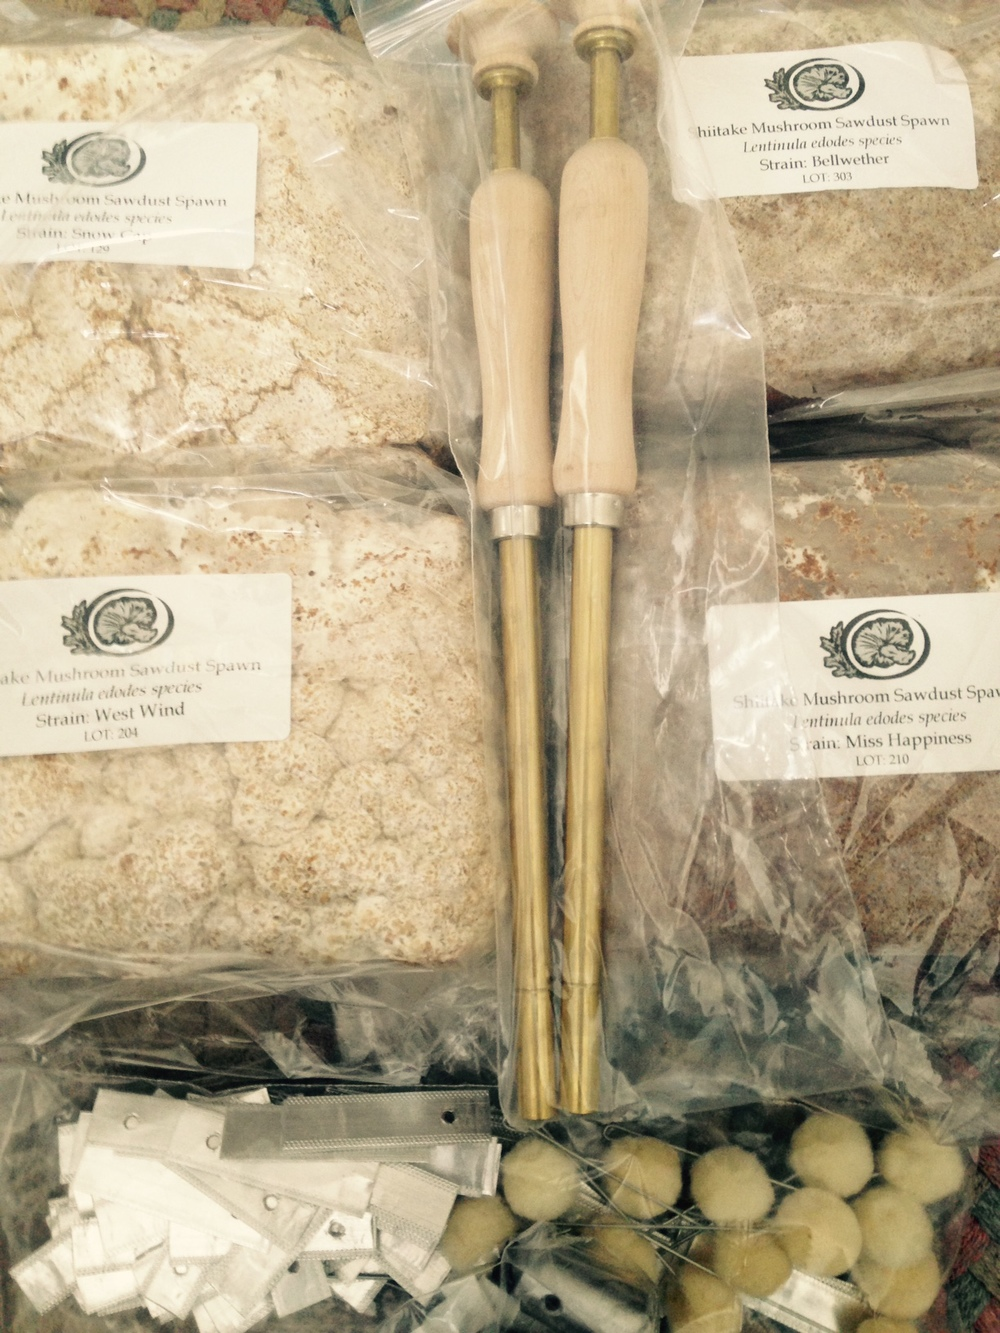 The supplies arrived in the mail a few days before - including sawdust spawn for four different varieties of shiitake mushrooms.